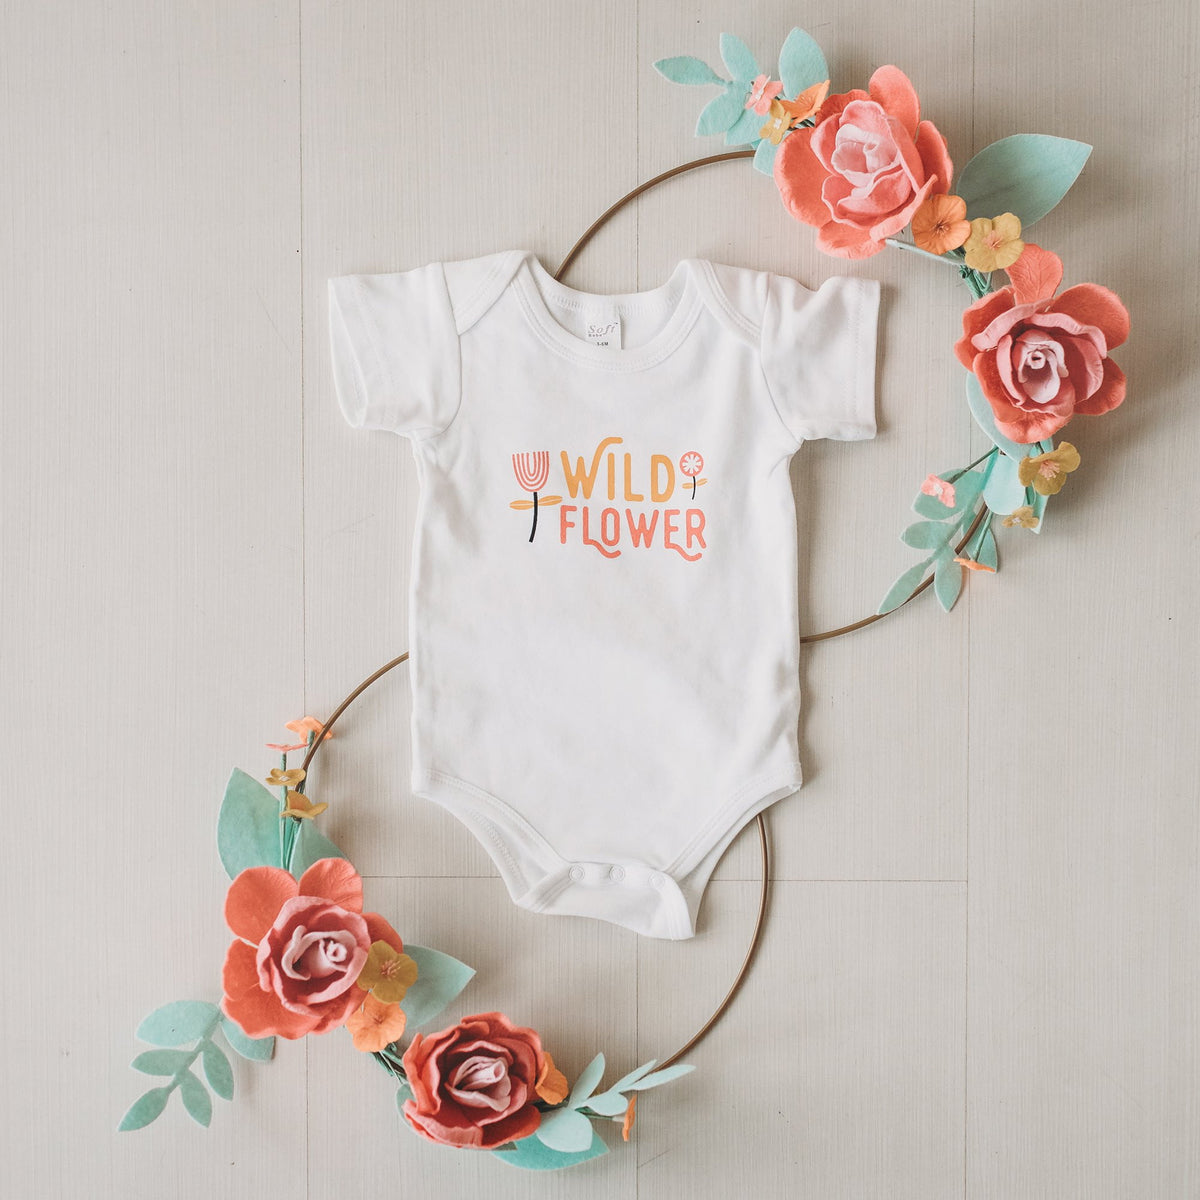 PRE-ORDER - Wild Flower baby bodysuit / onesie - Sweetpea and Co.